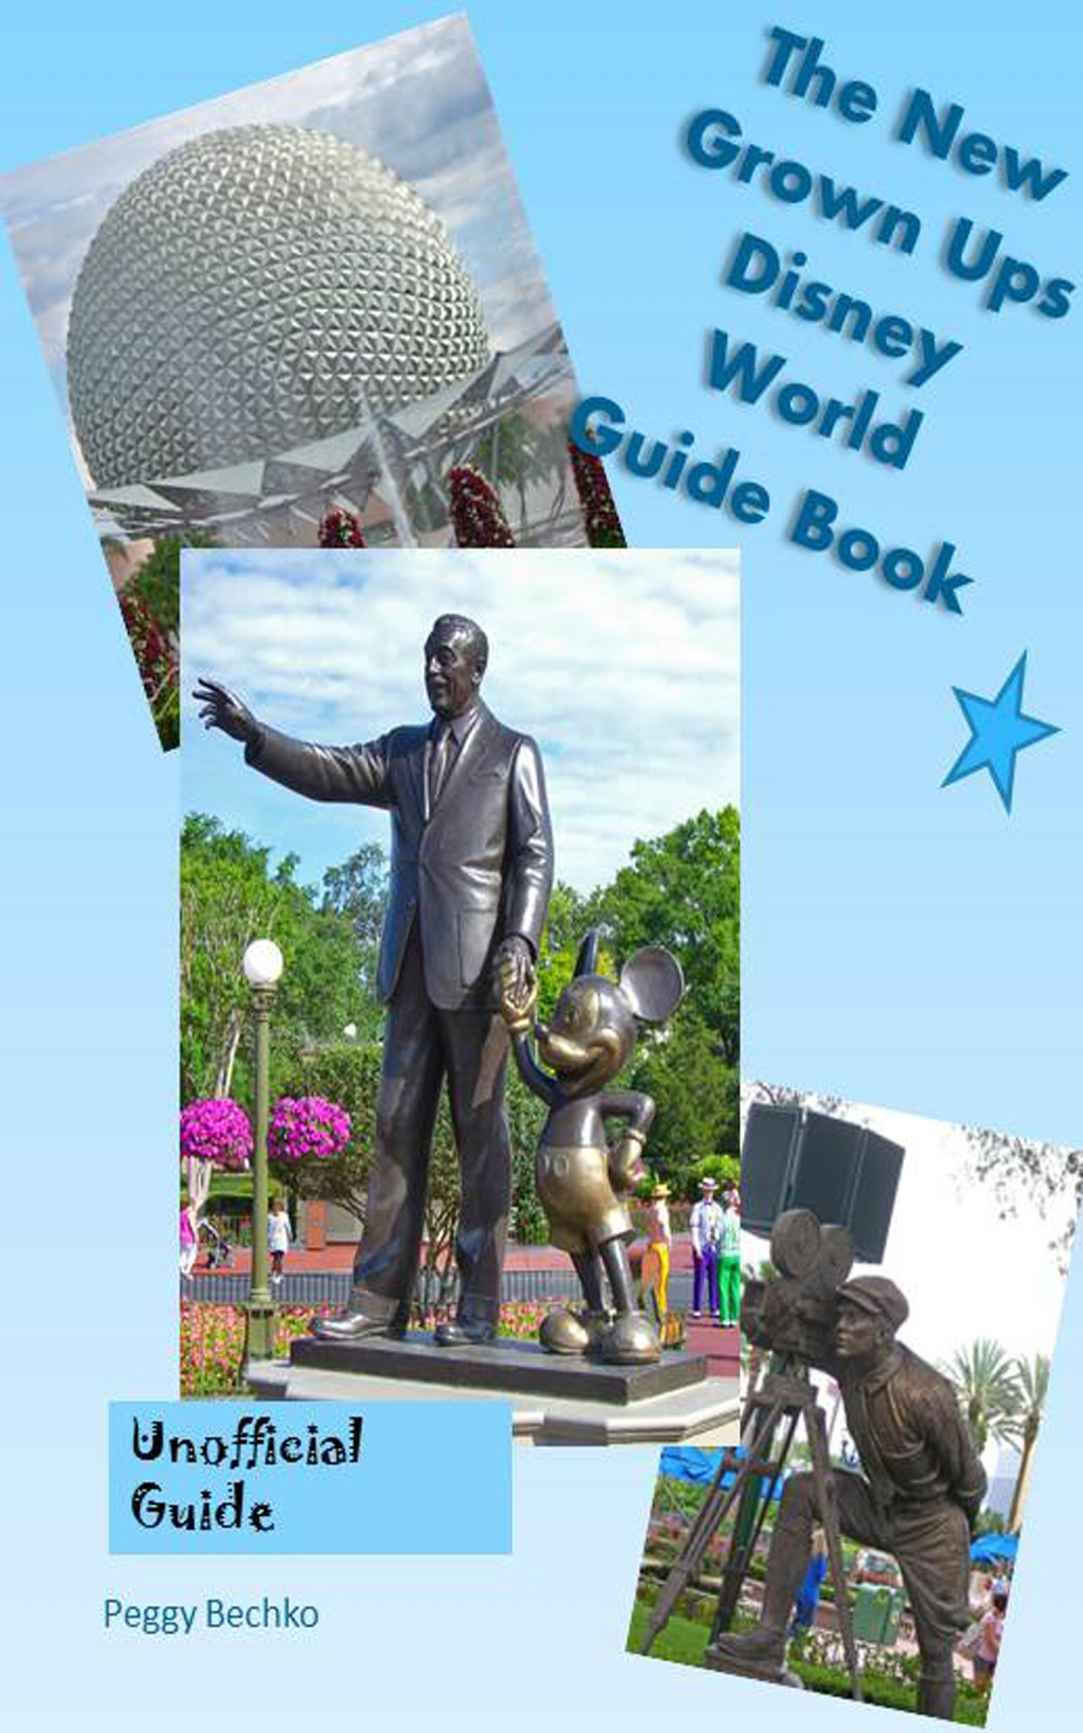 The New Grown Ups Disney World Guide Book eBook edition byPeggy Bechko - lots of tips